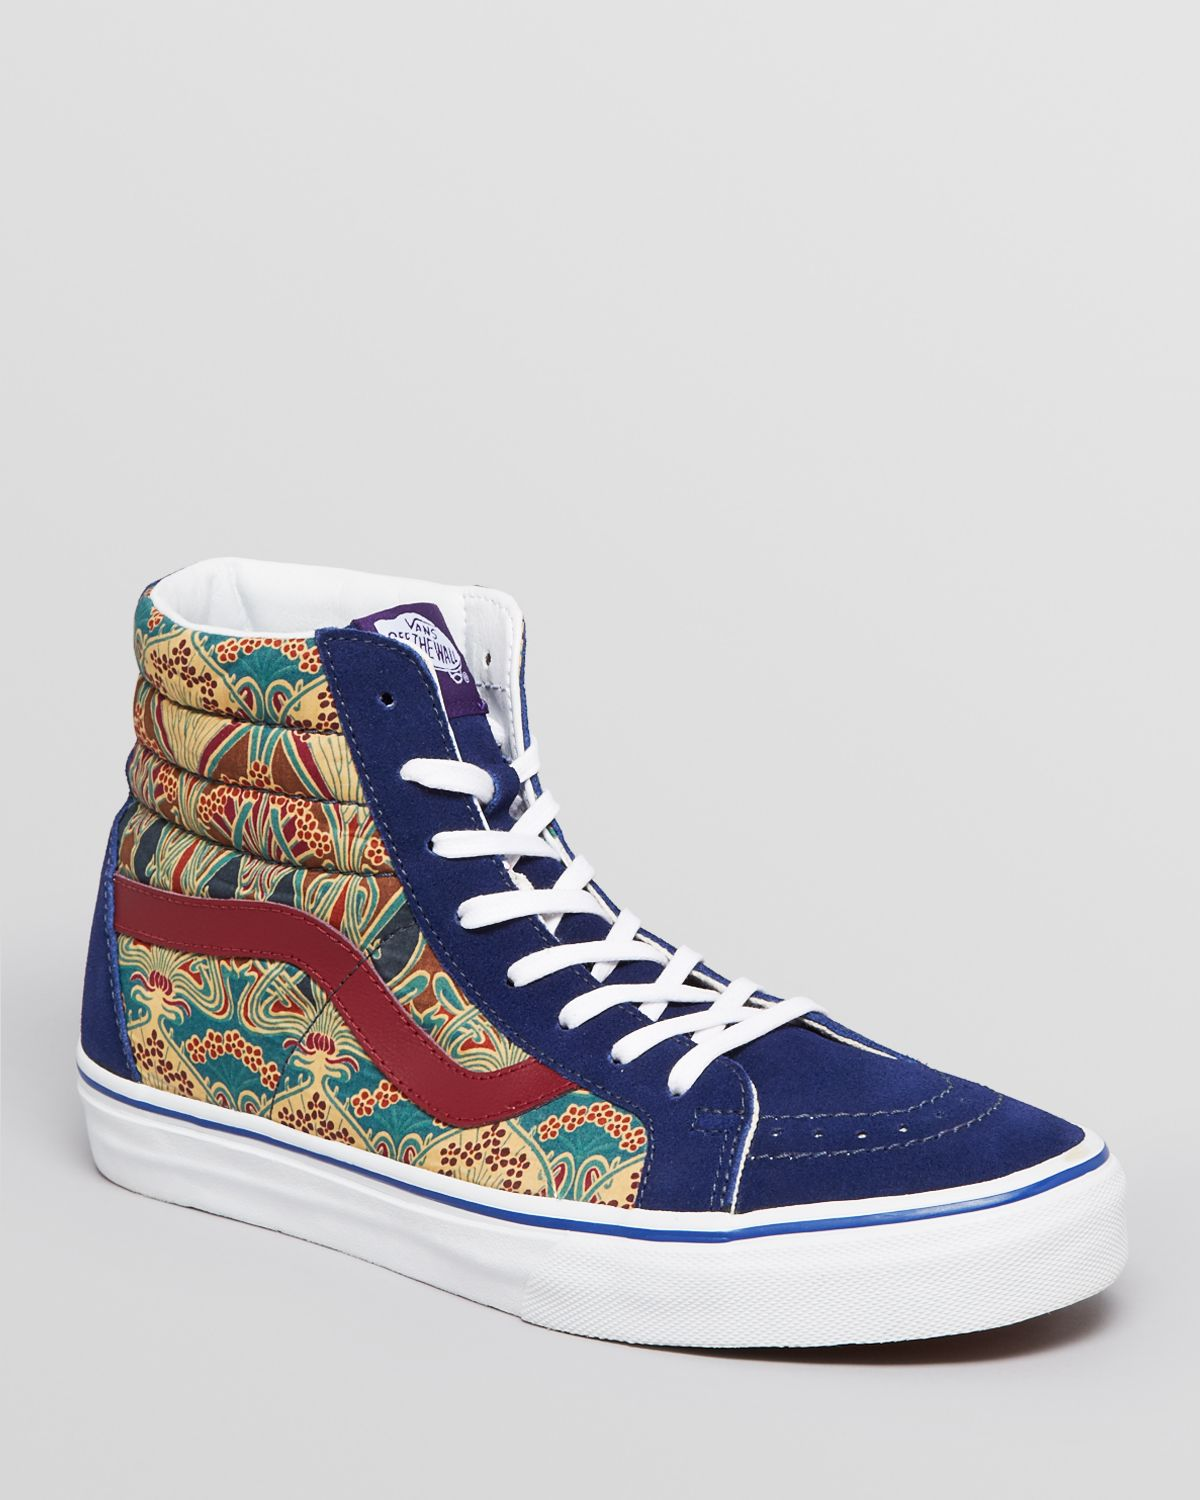 Lyst - Vans High Top Sneakers in Blue for Men